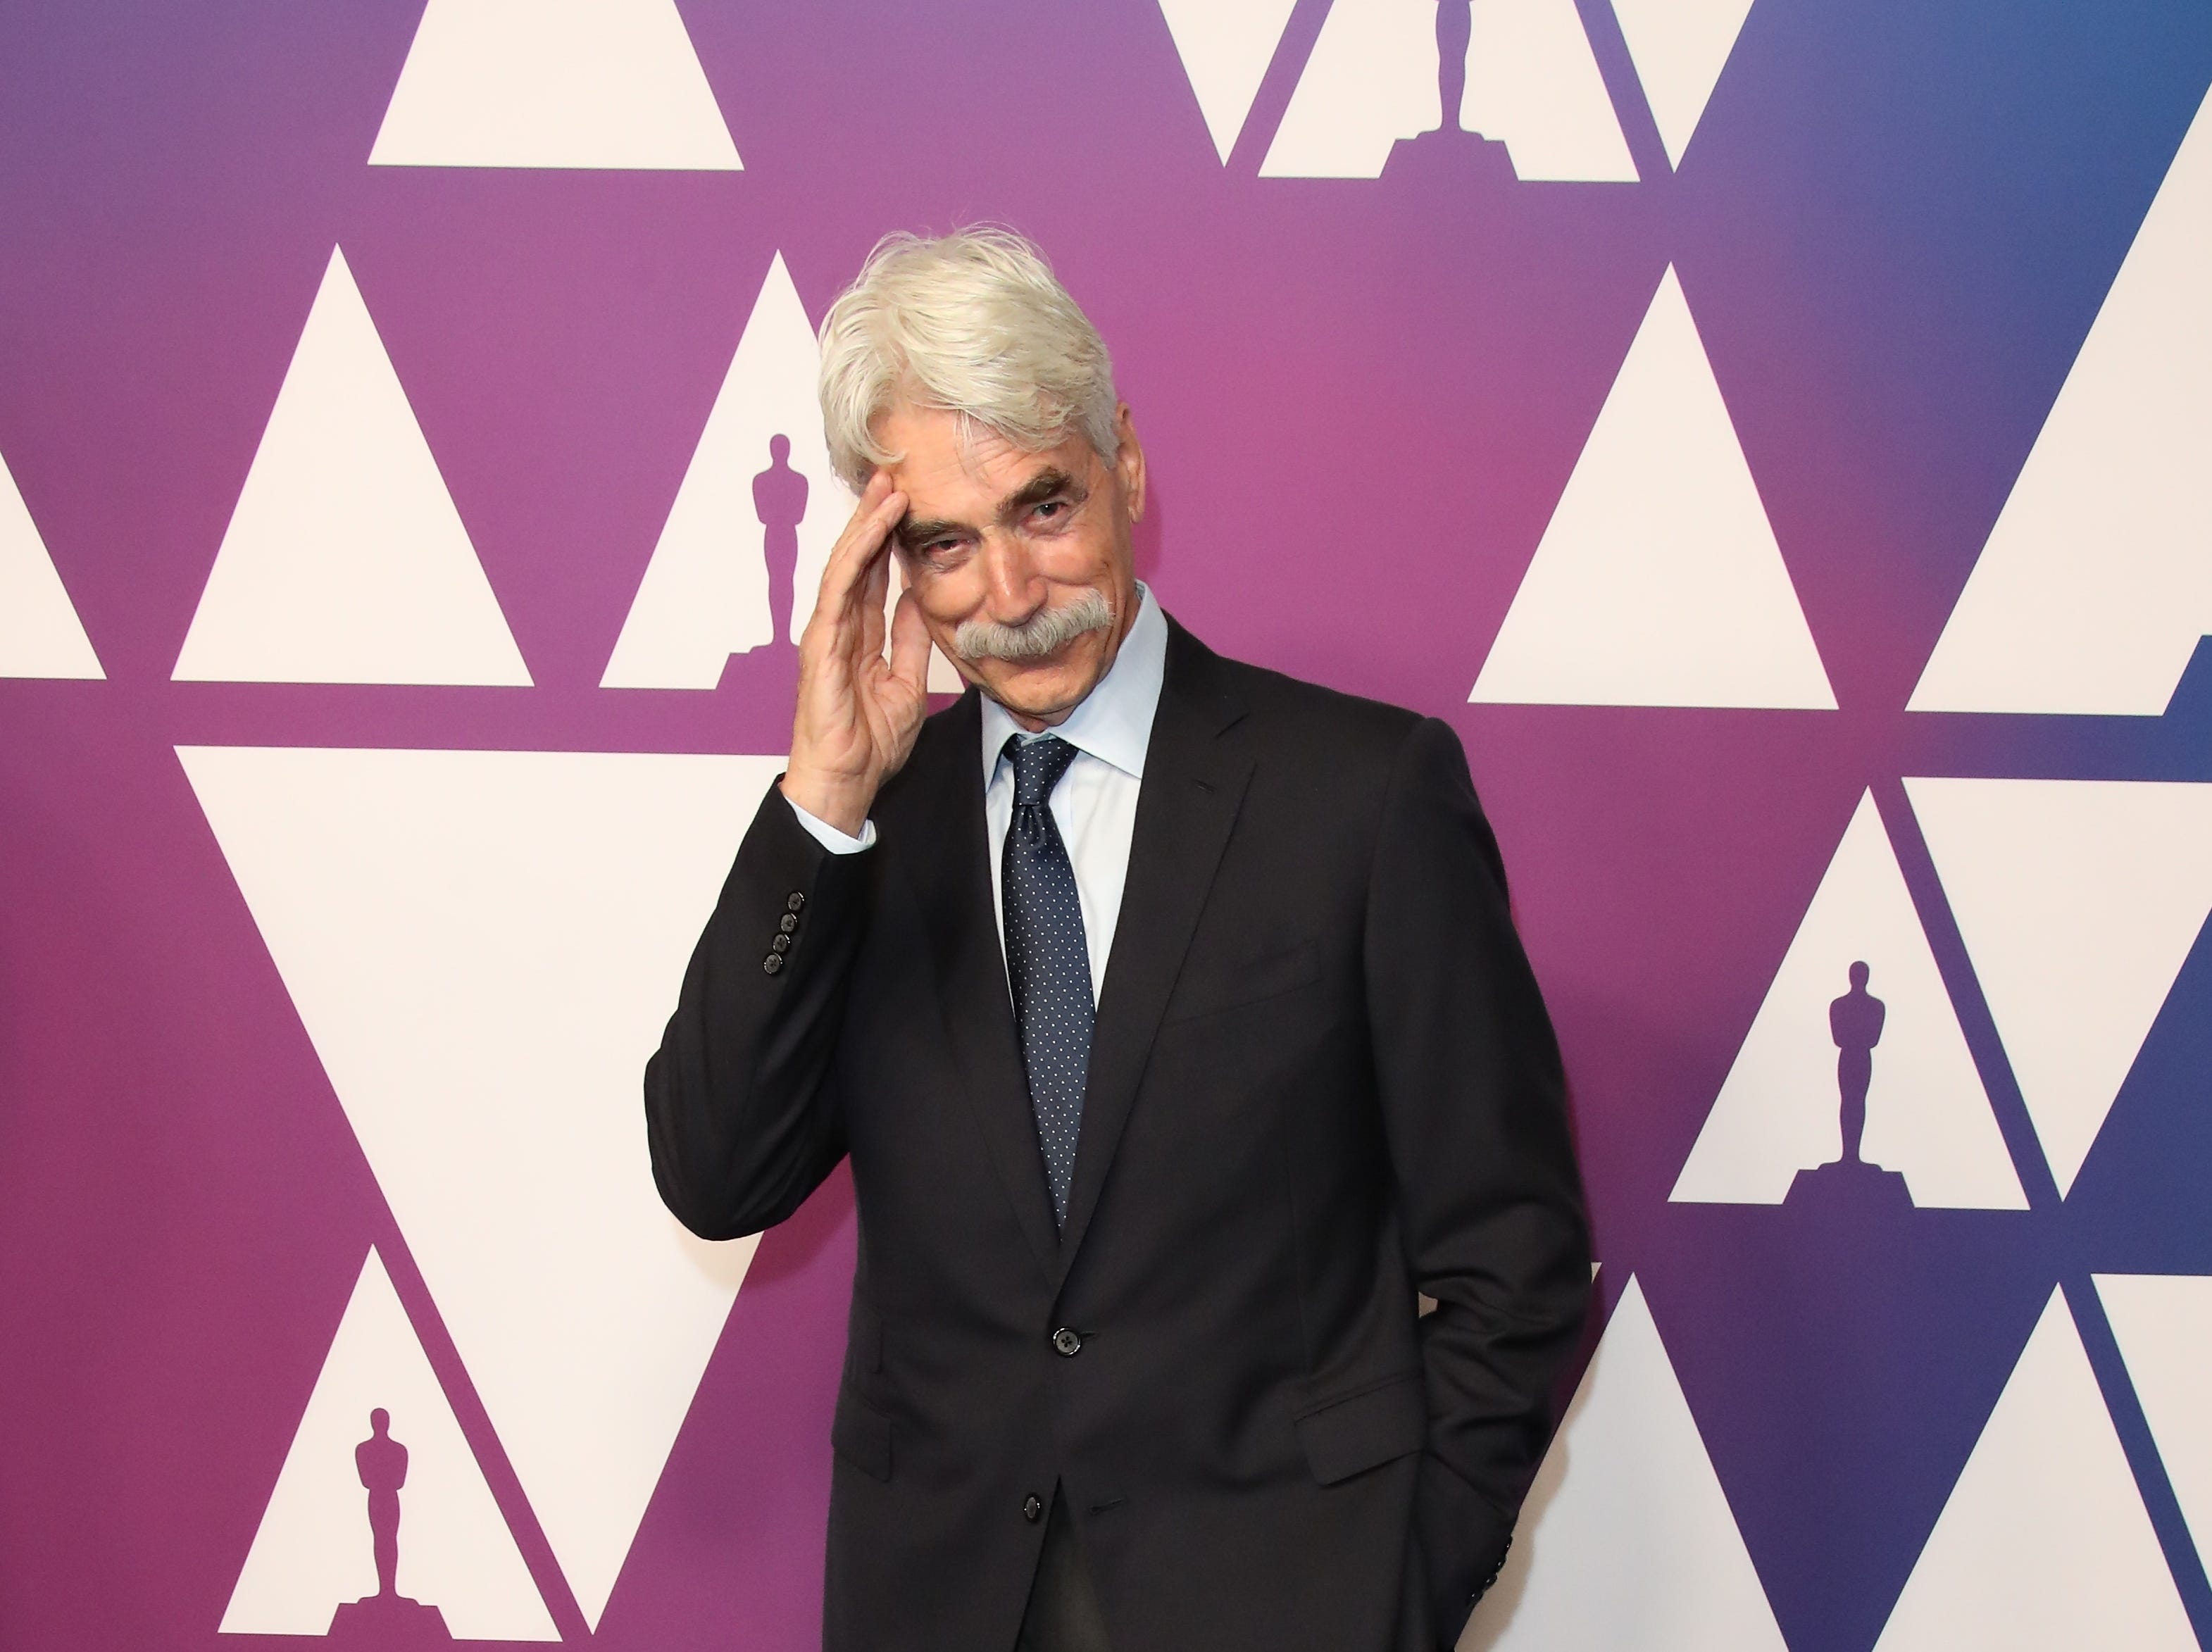 2/4/19 12:20:05 PM -- Beverly Hills, CA, U.S.A  -- Sam Elliott arrives at the 91st Oscar nominees luncheon at the Beverly Hilton Hotel in Beverly Hills, CA--    Photo by Dan MacMedan, USA TODAY contract photographer ORG XMIT:  DM 137796 OscarNomineesLun 2/4/2019 [Via MerlinFTP Drop]